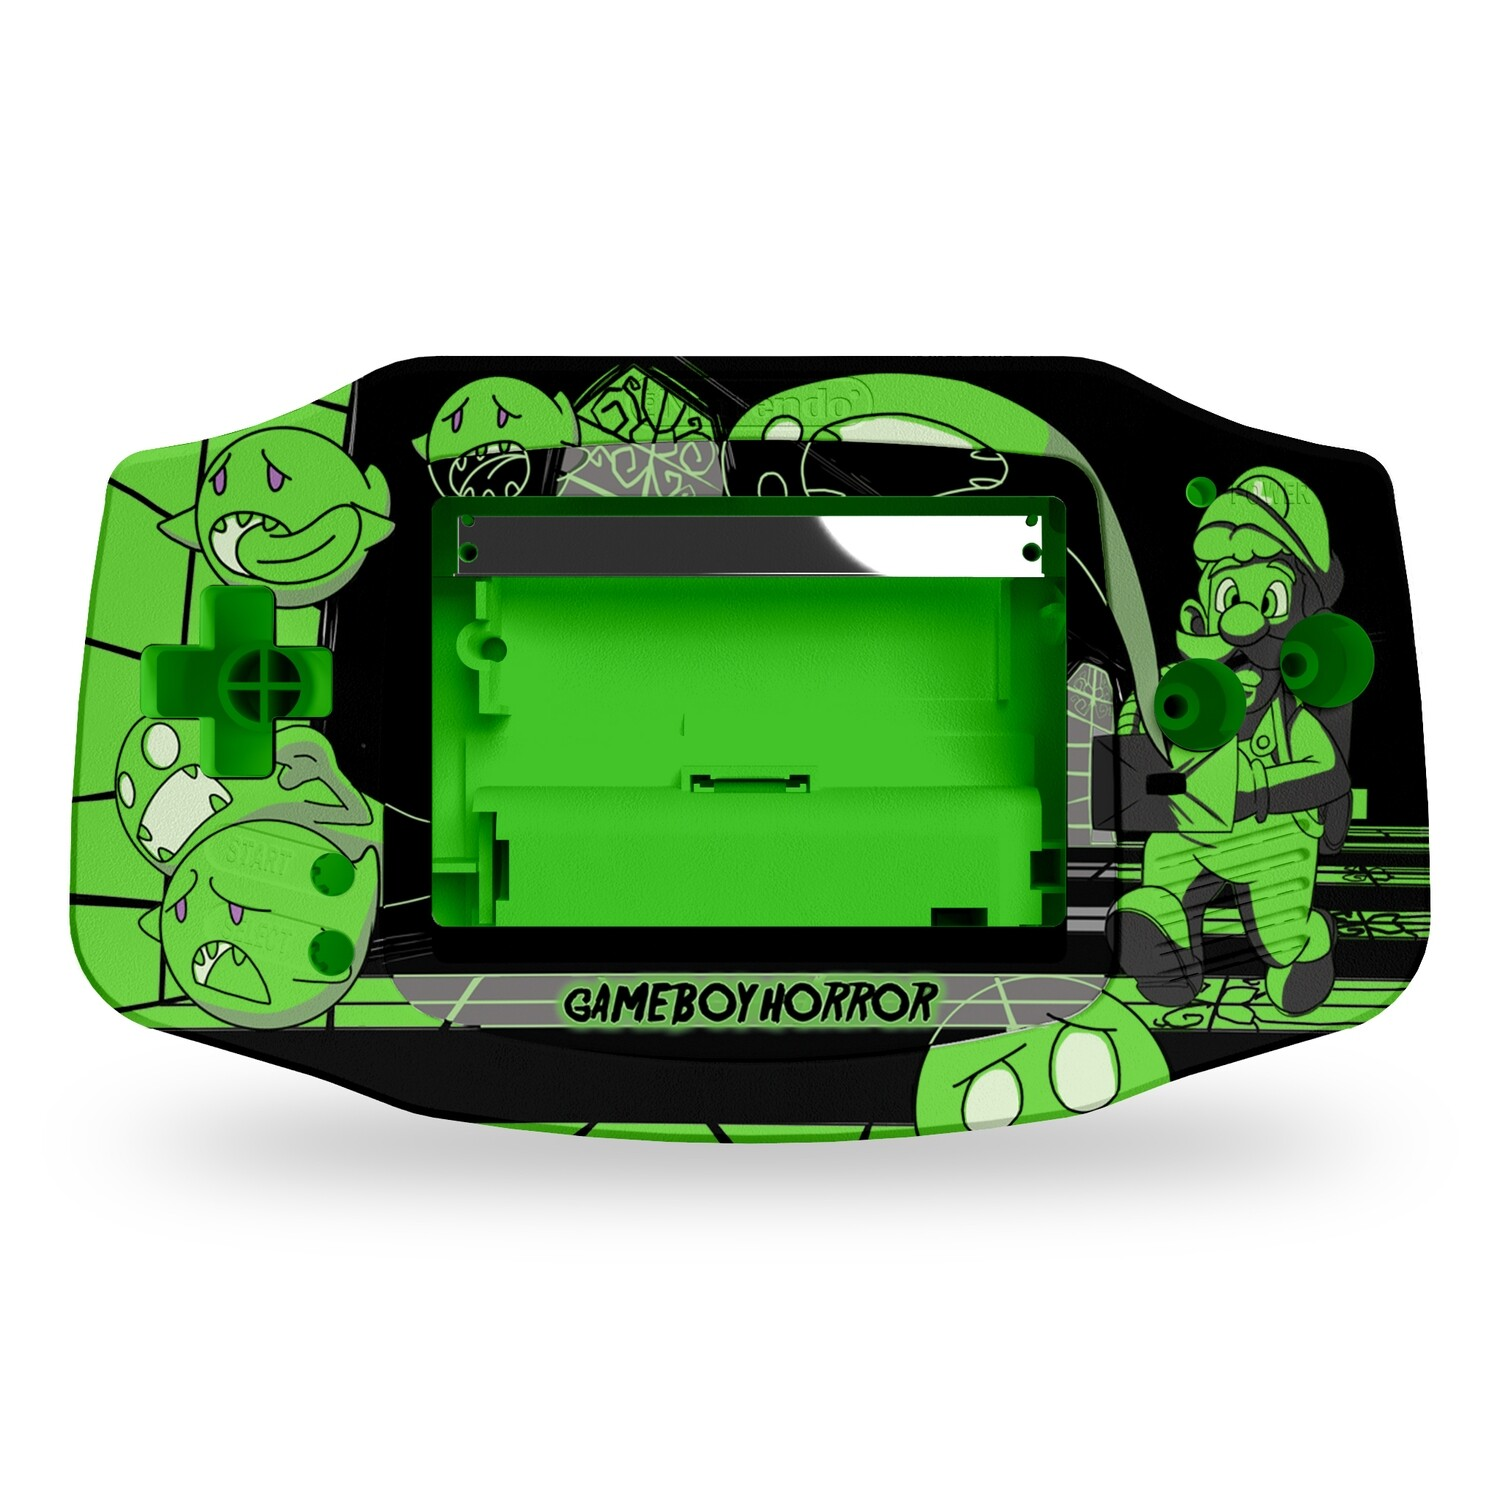 Game Boy Advance Printed Shell (Luigi Horror)